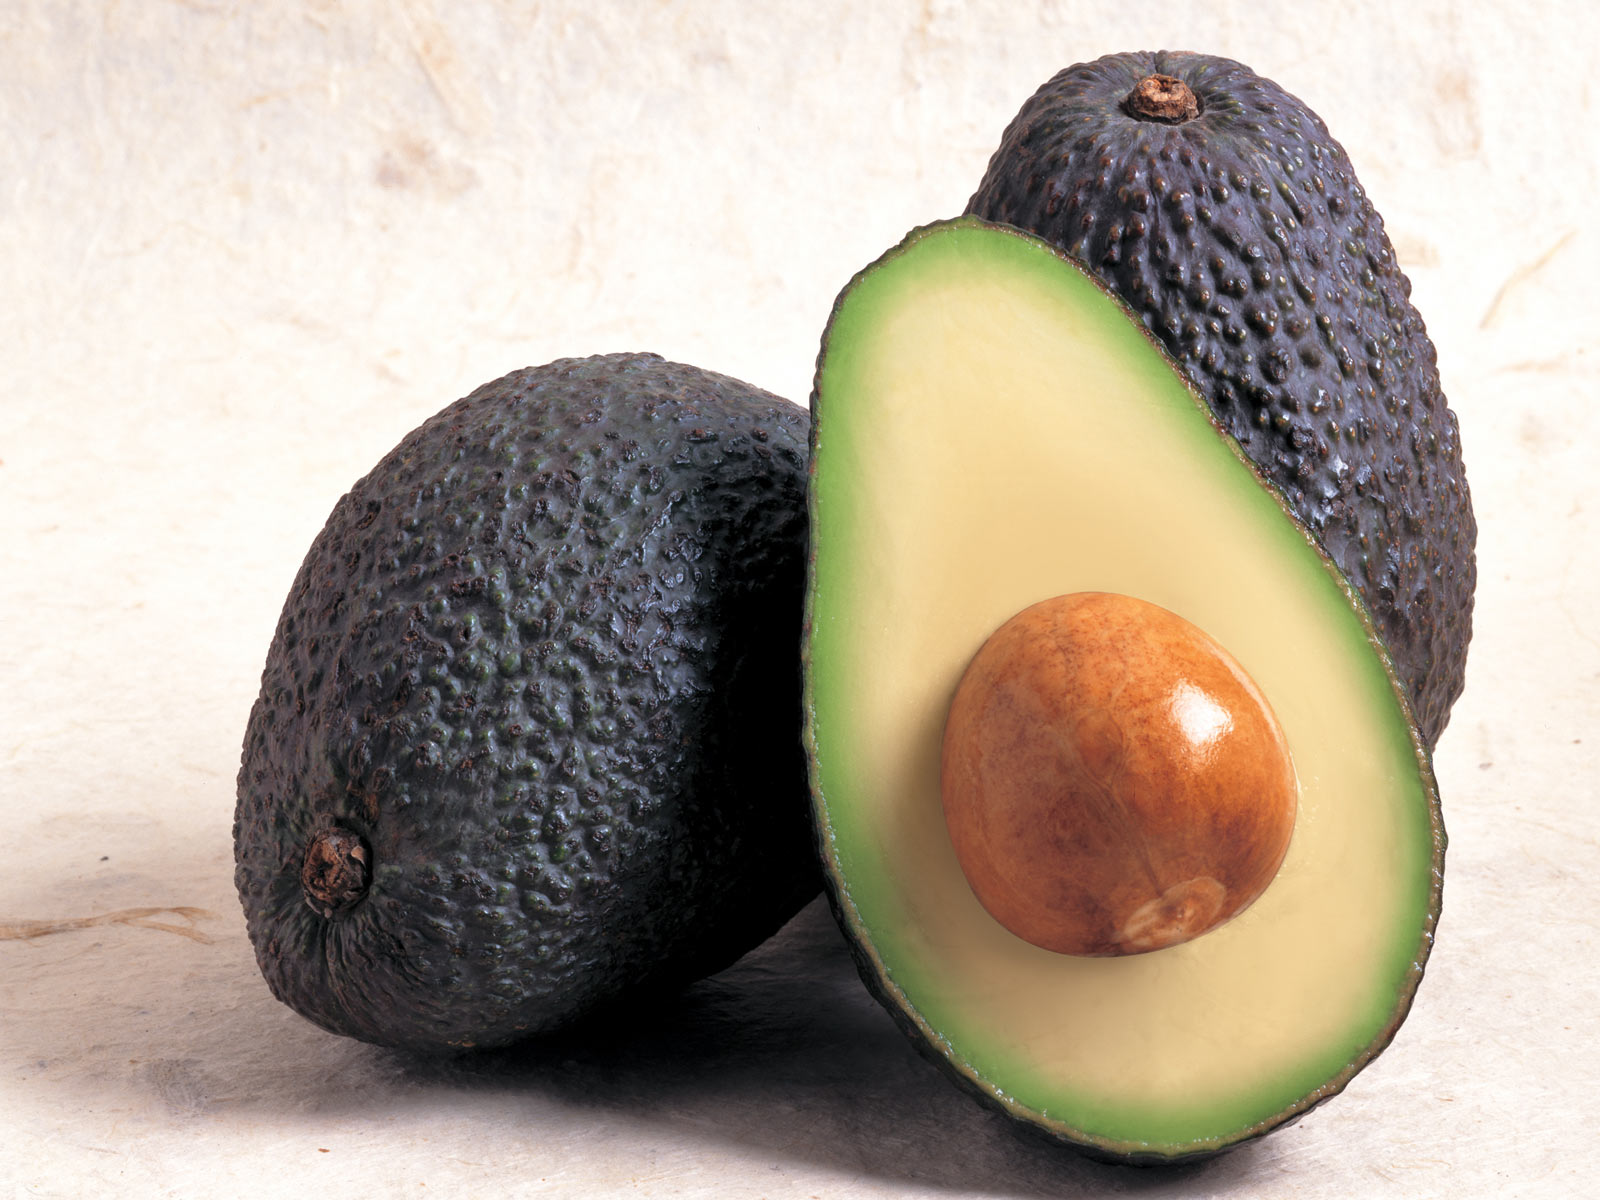 Avocado Pictures